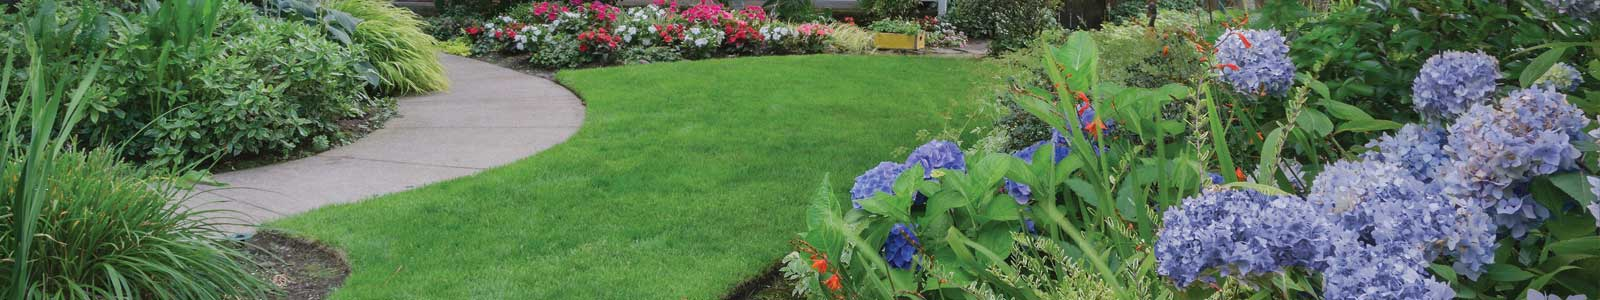 Cedar Hill Property Maintenance Landscape Services